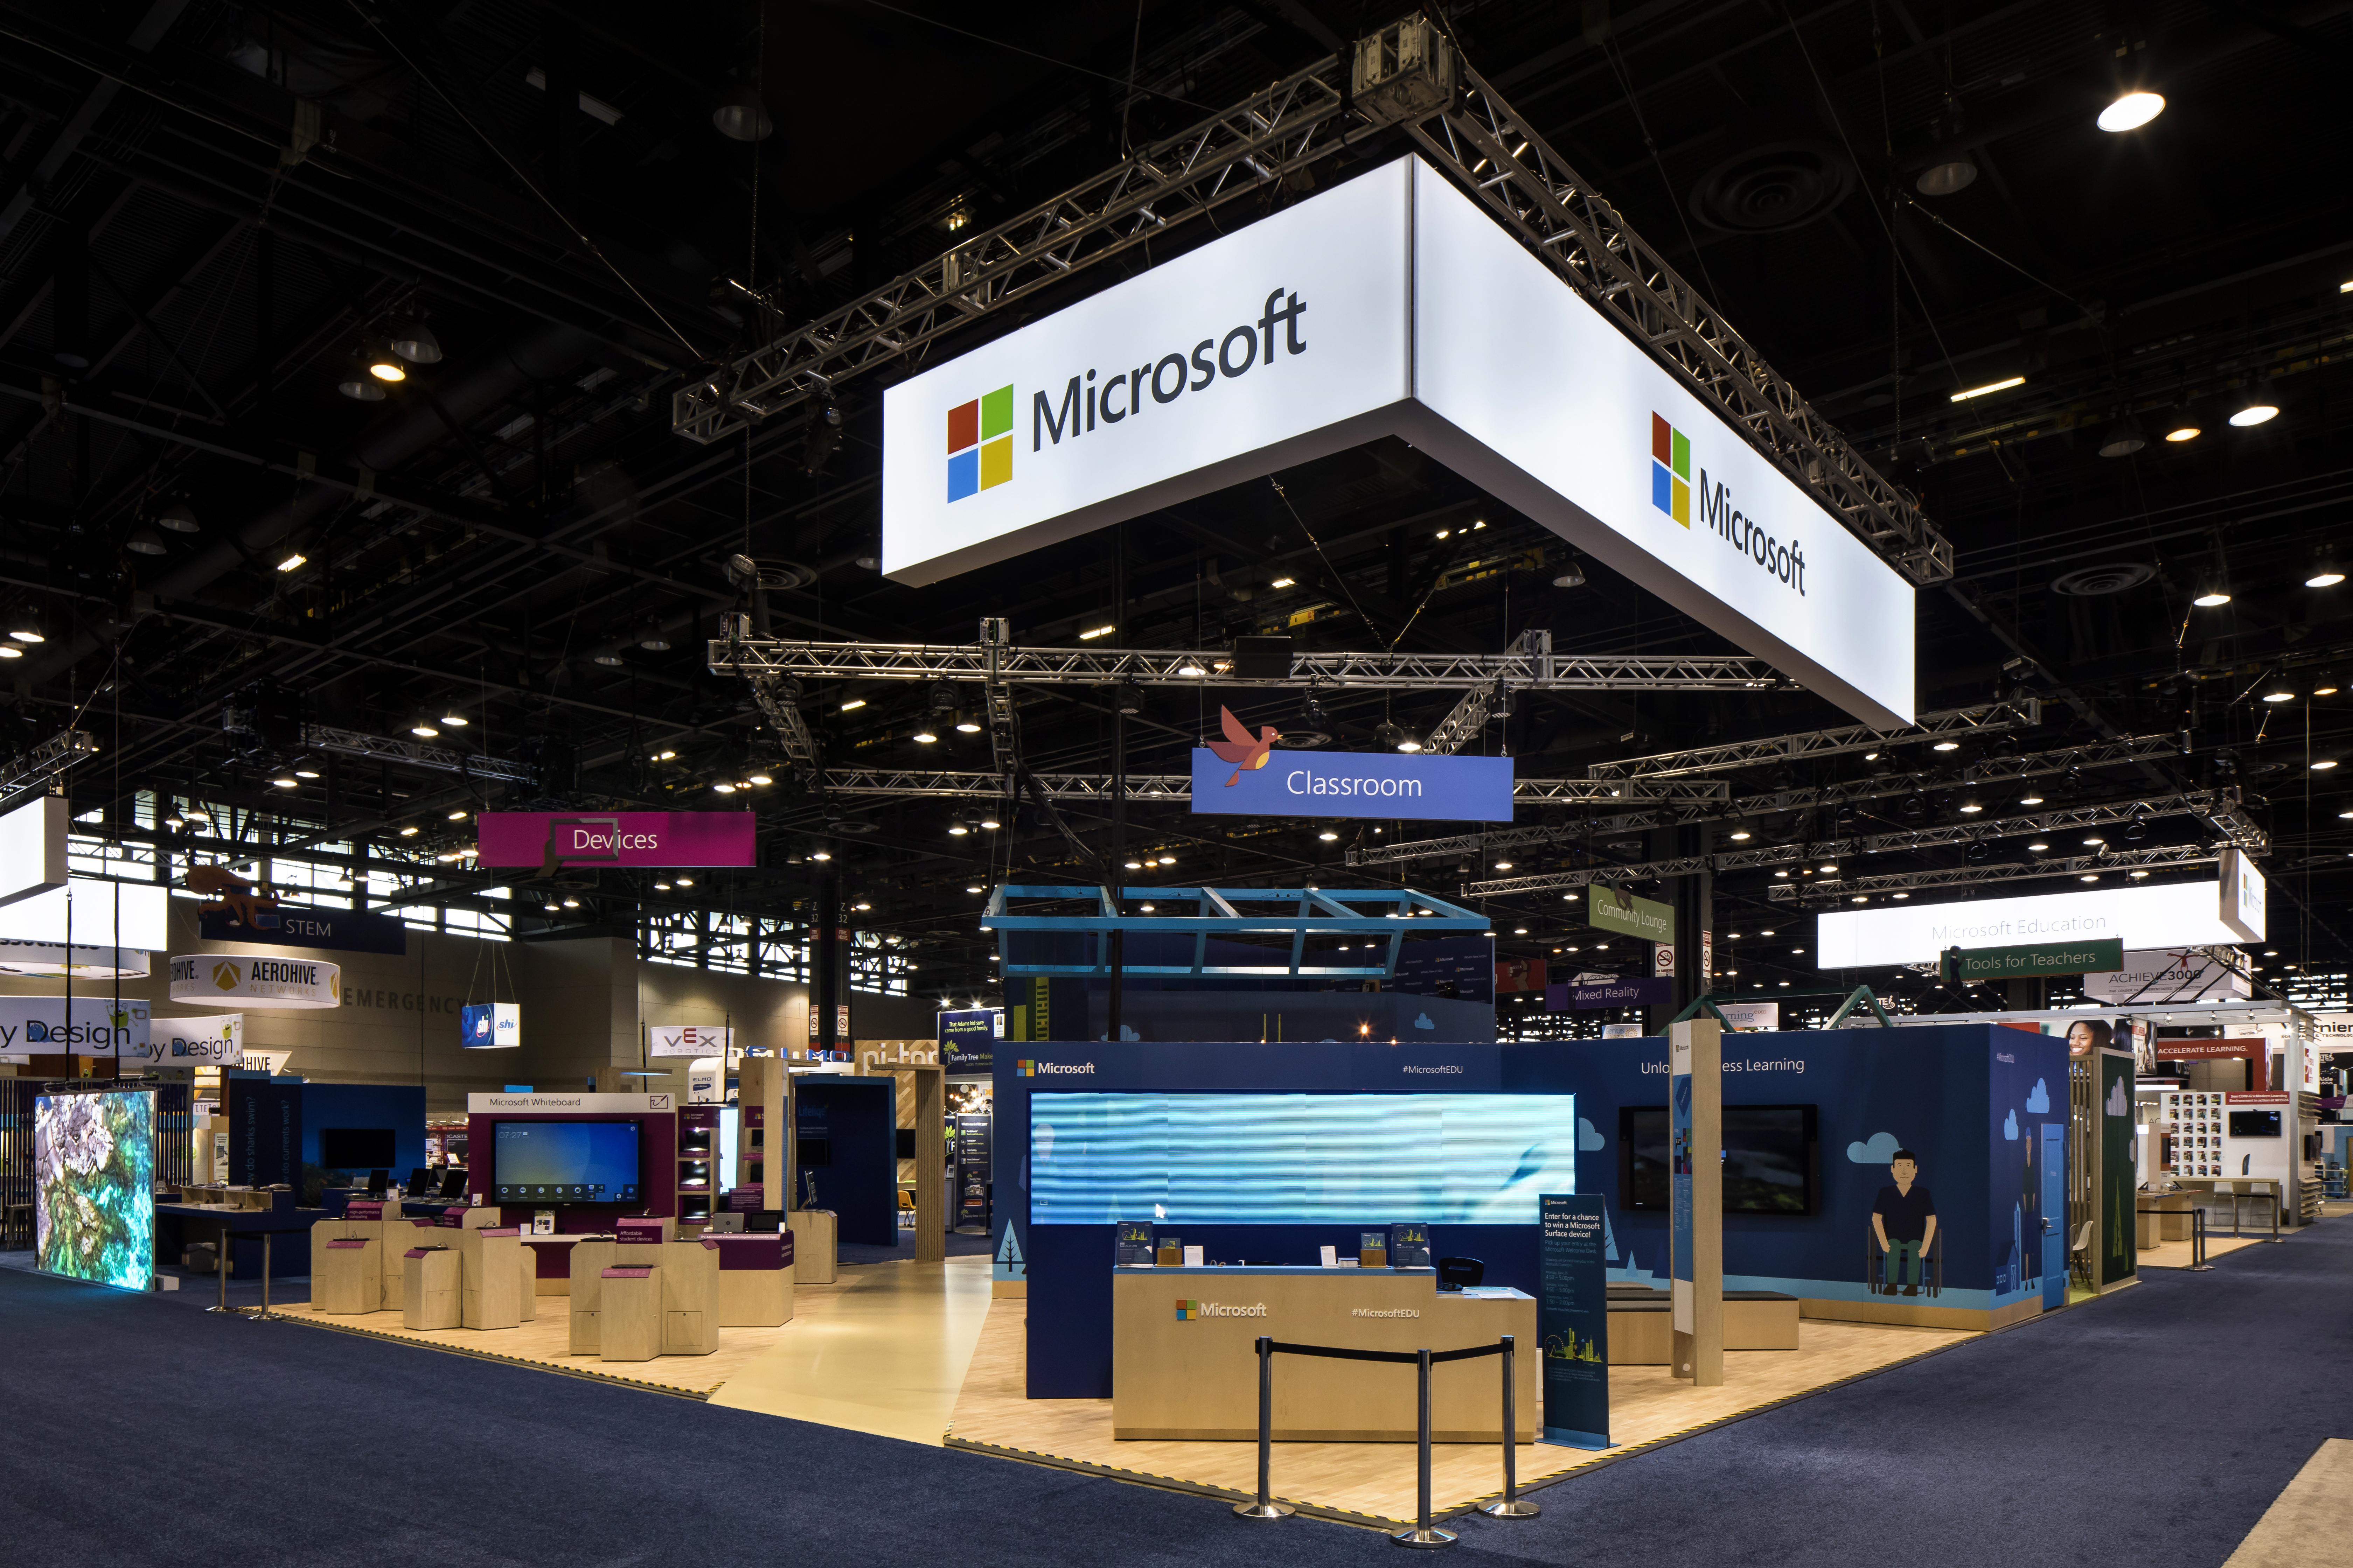 Microsoft ISTE 2018 (International Society for Technology in Education)